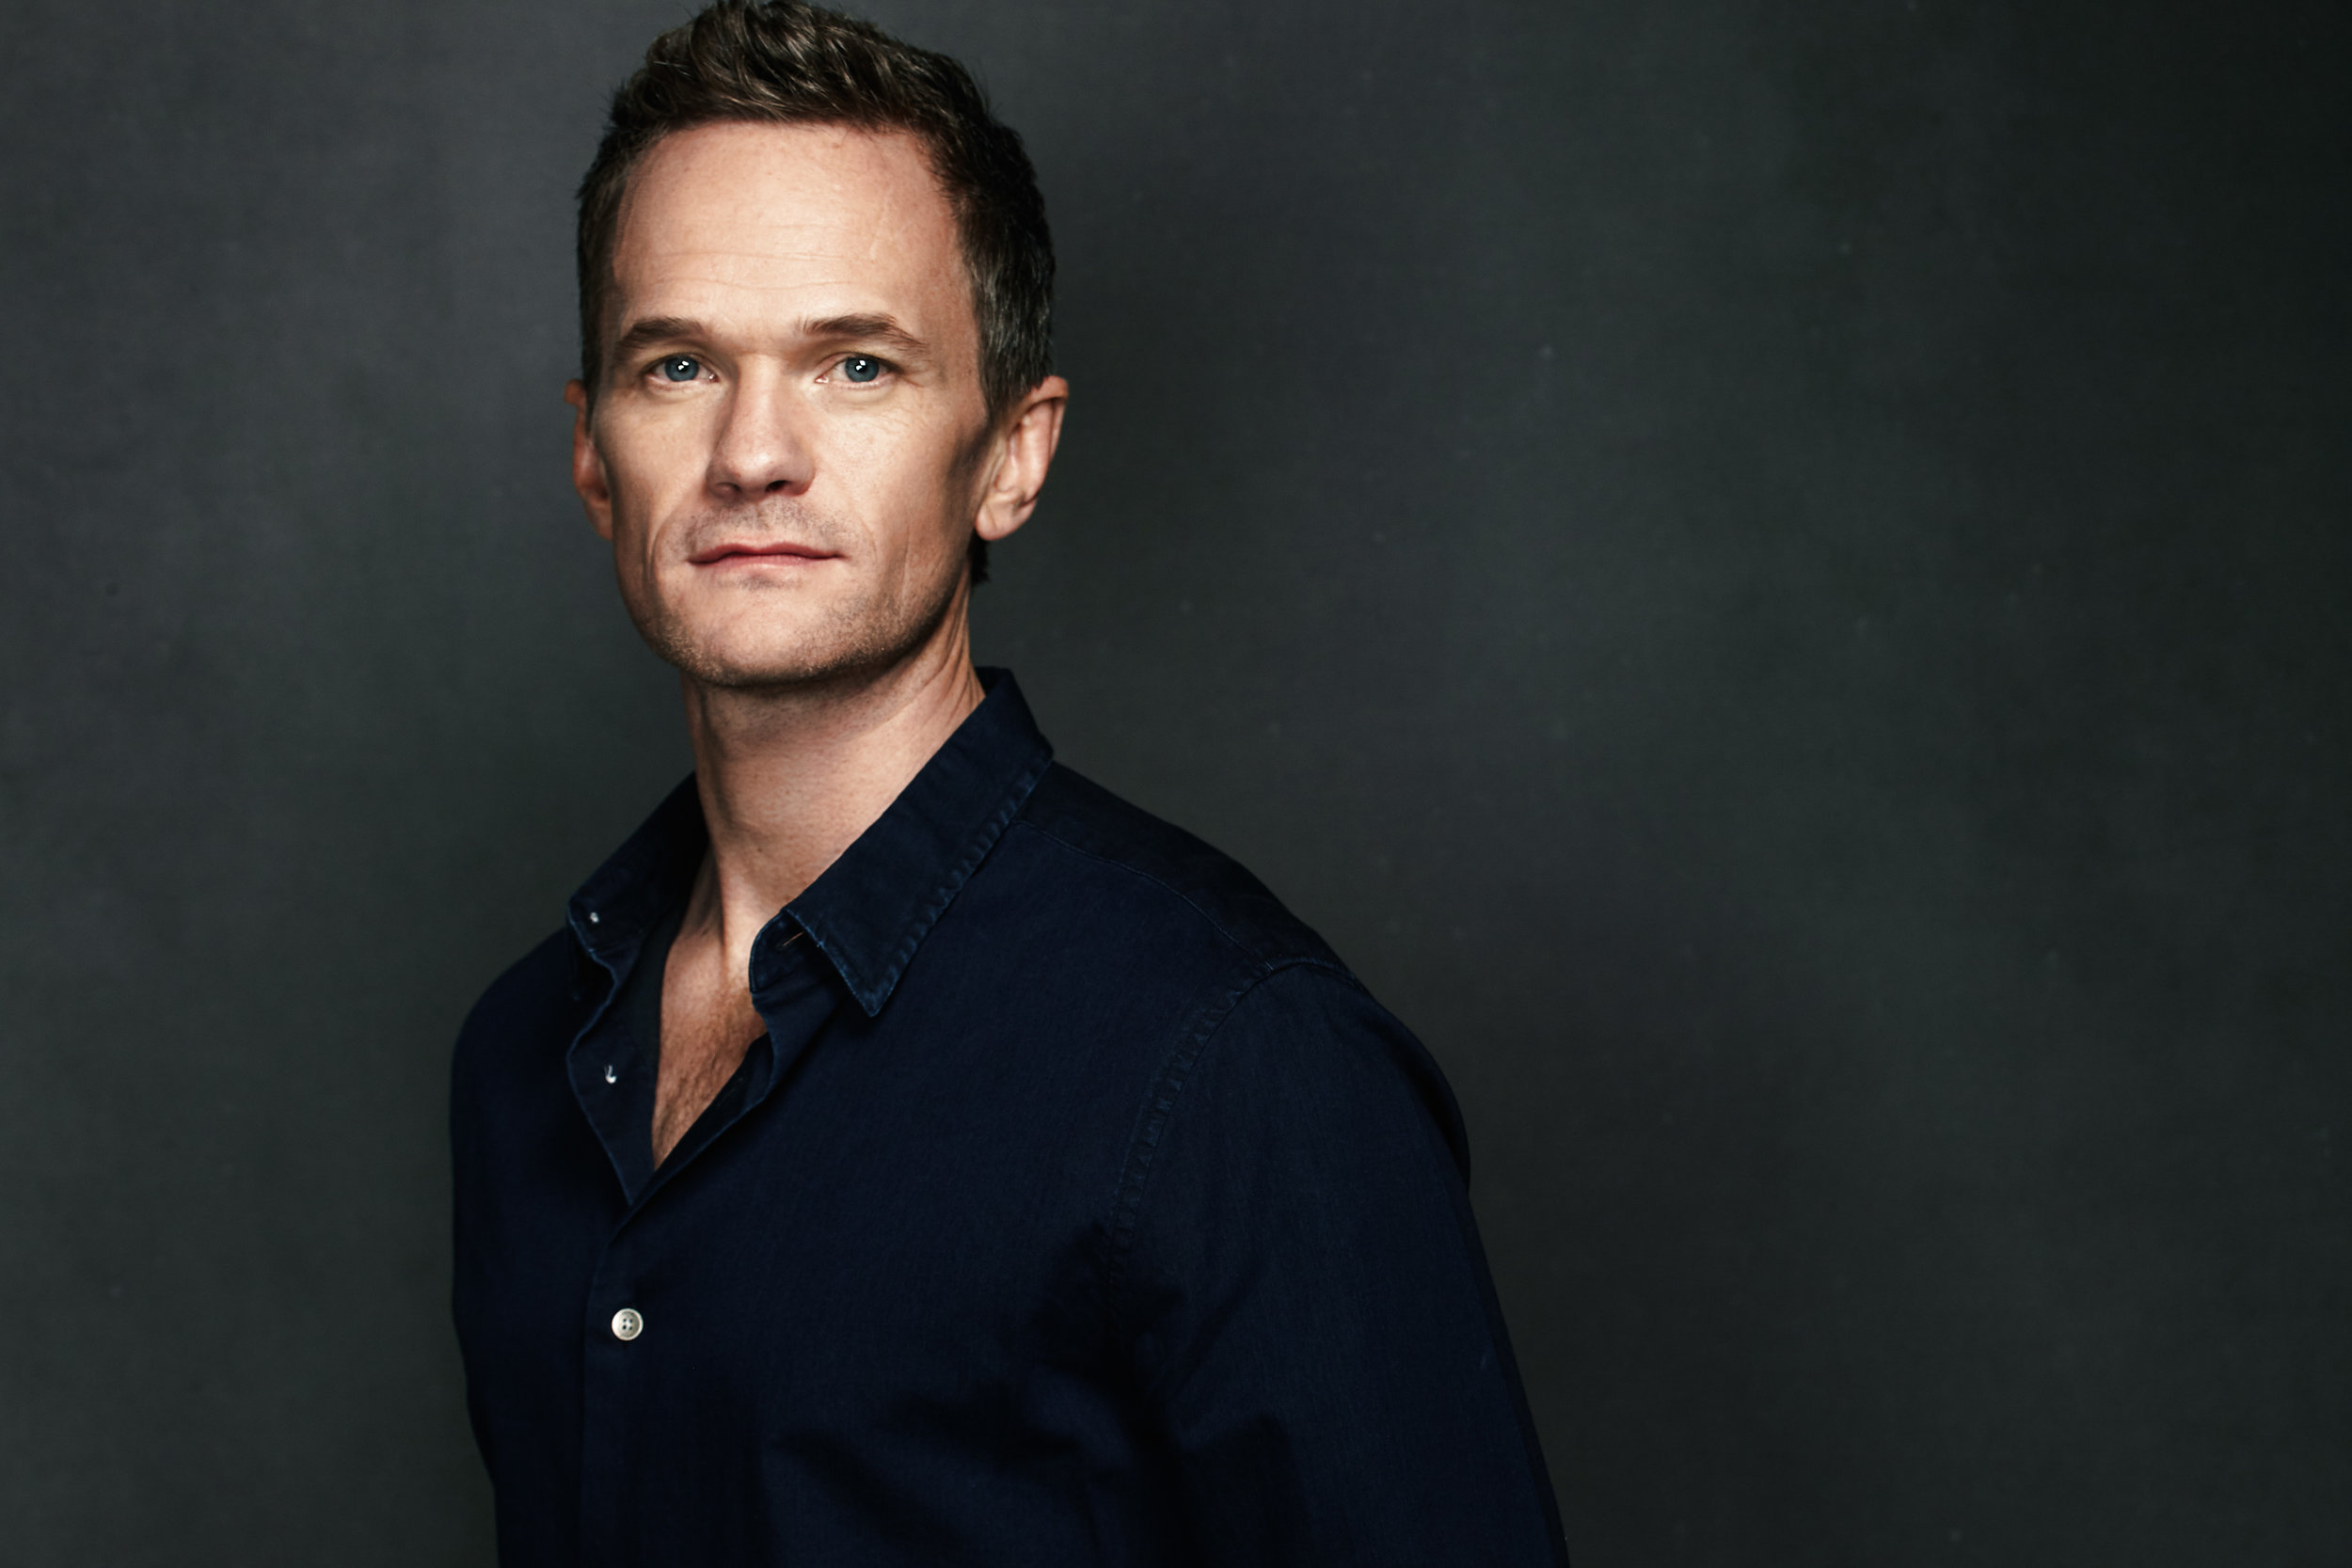 <strong>Neil Patrick Harris</strong>